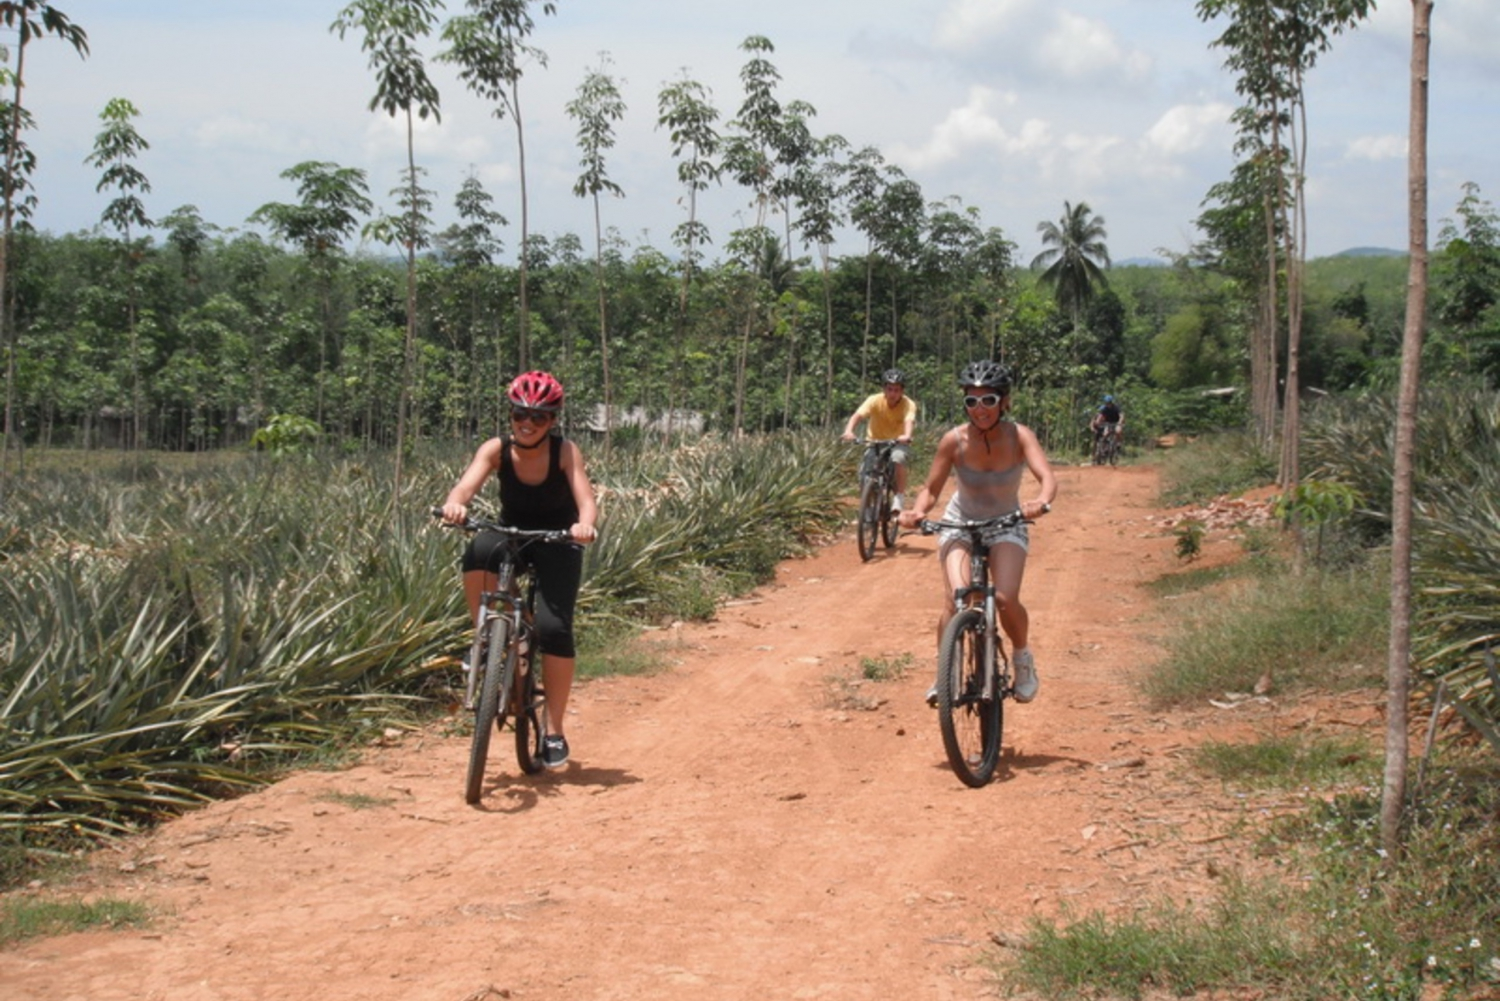 Phuket Countryside Half Day Bike Tour Suitable for All